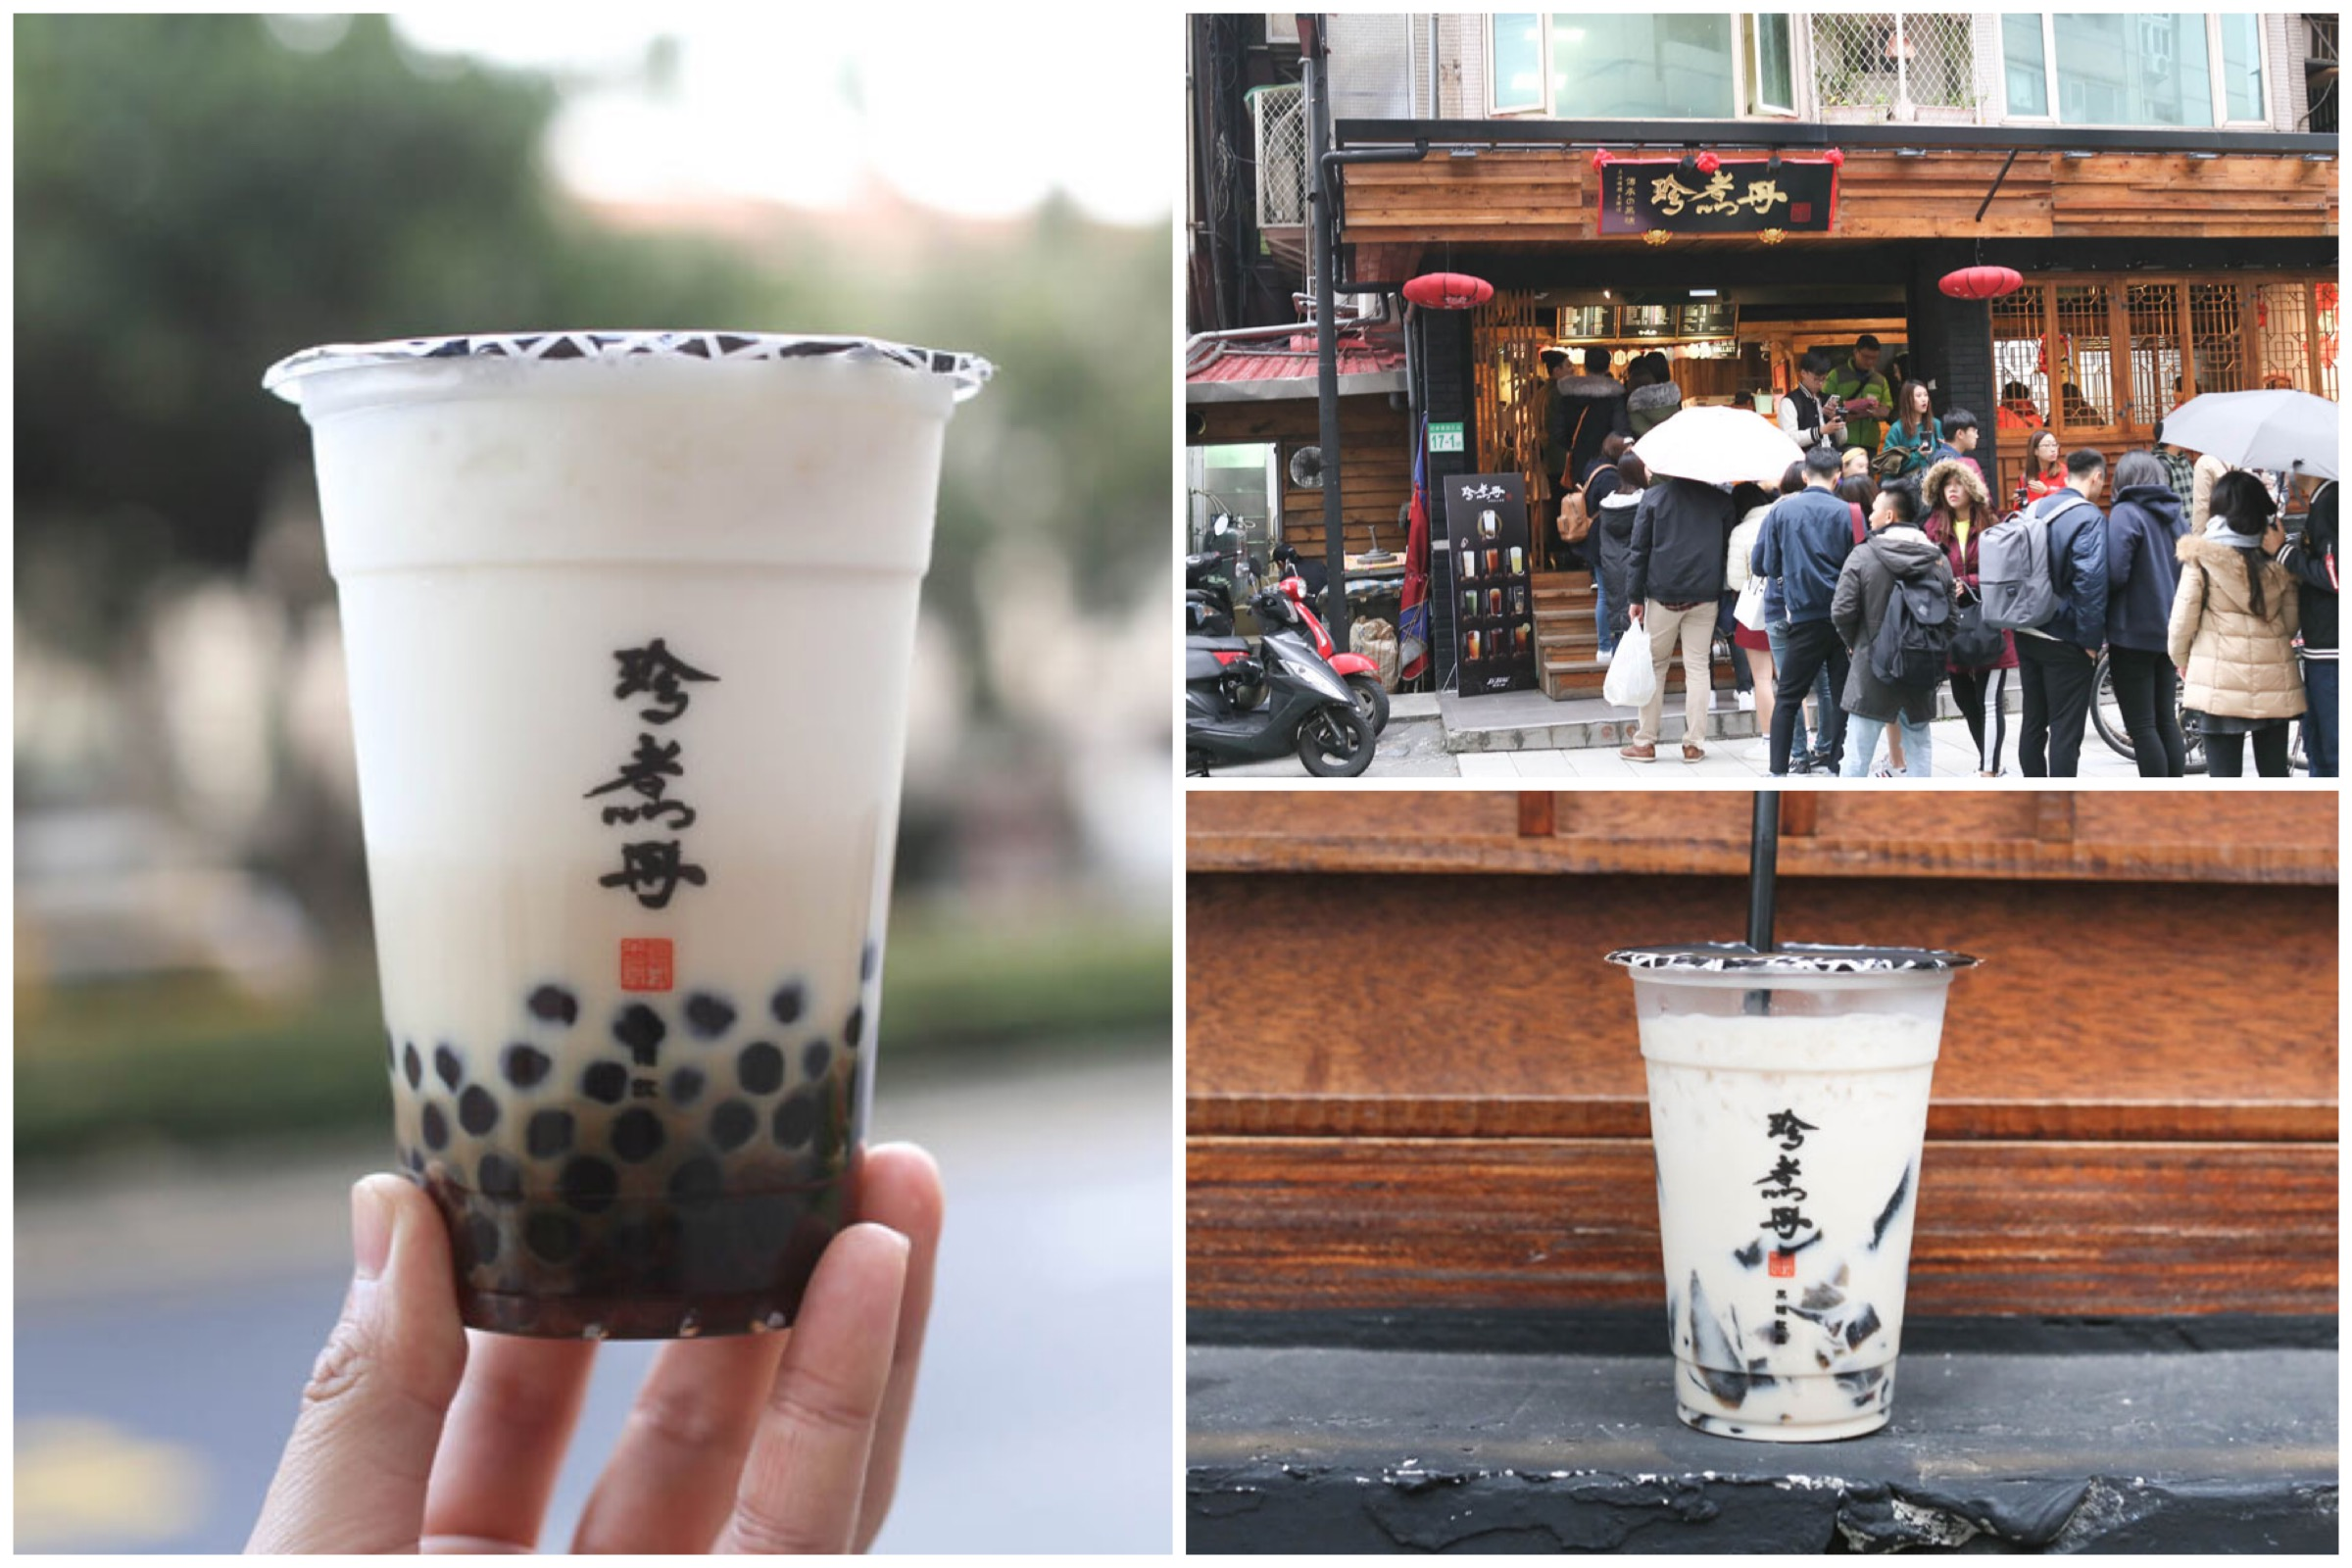 Jenjudan 珍煮丹 – One Of The Most Popular Brown Sugar Milk Pearl Shops From Taipei, For Soul-Refreshing Sweetness